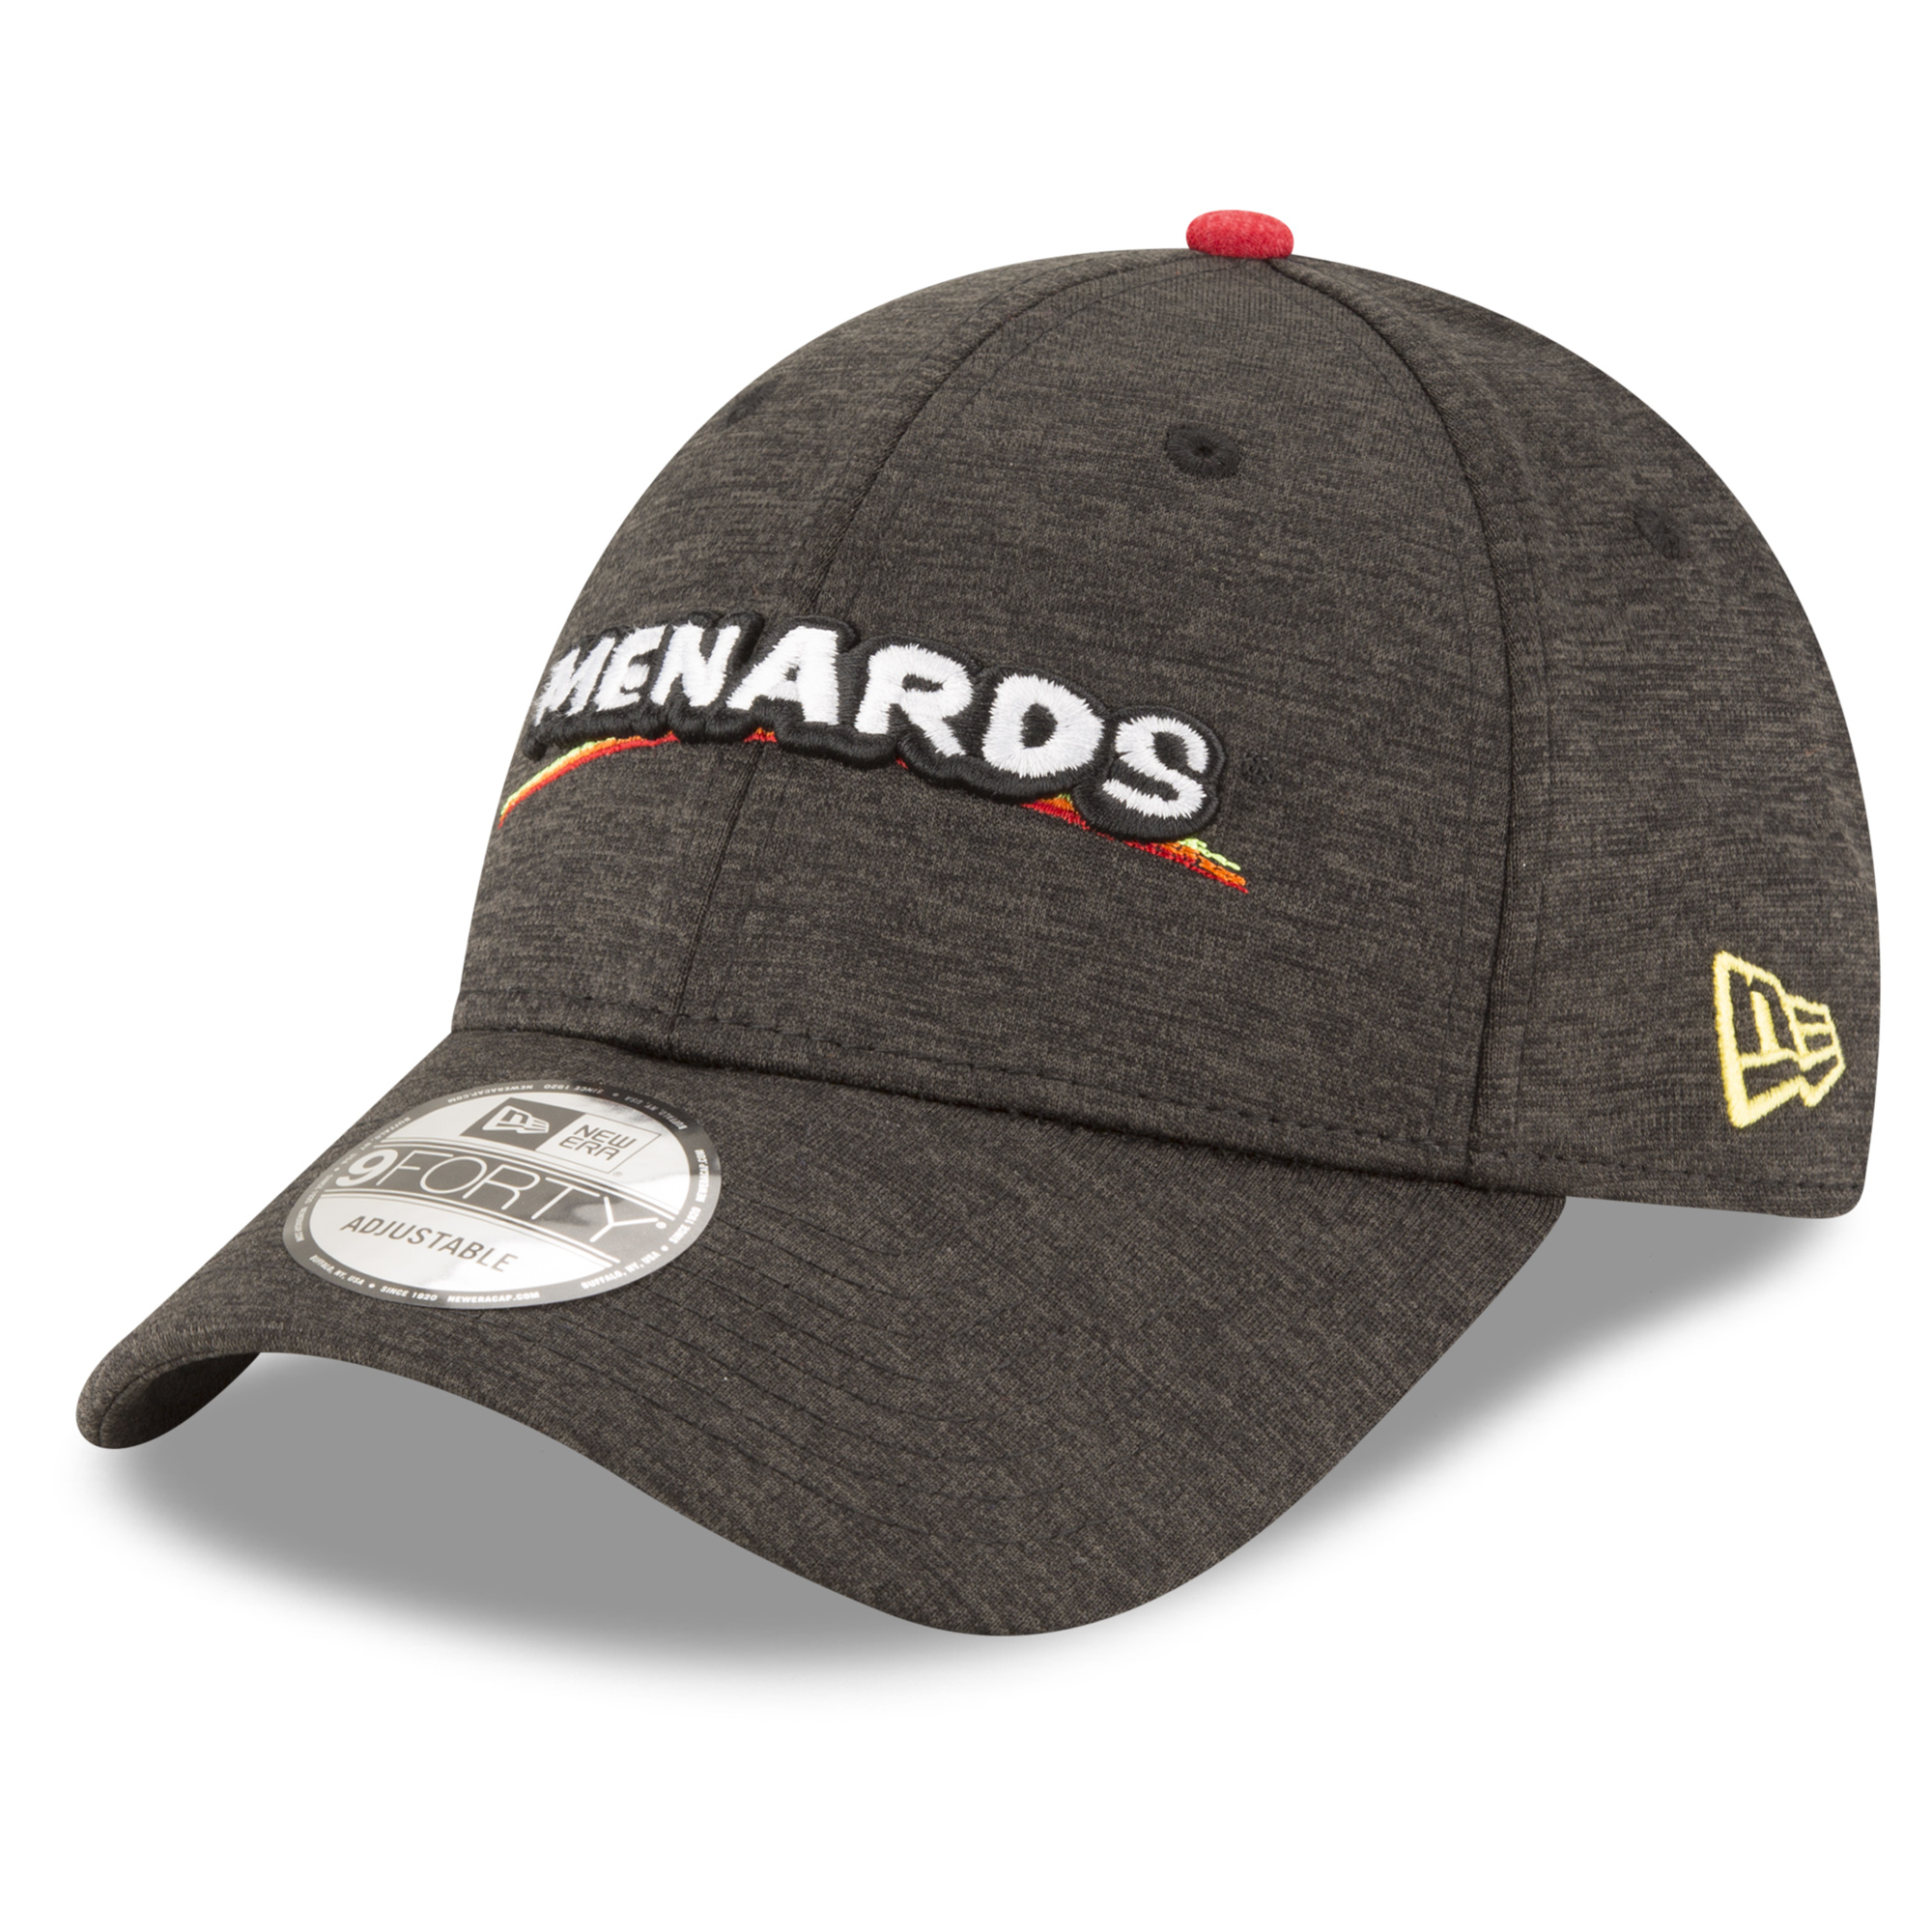 Ryan Blaney New Era Menards Driver 9FORTY Adjustable Hat - Black - OSFA